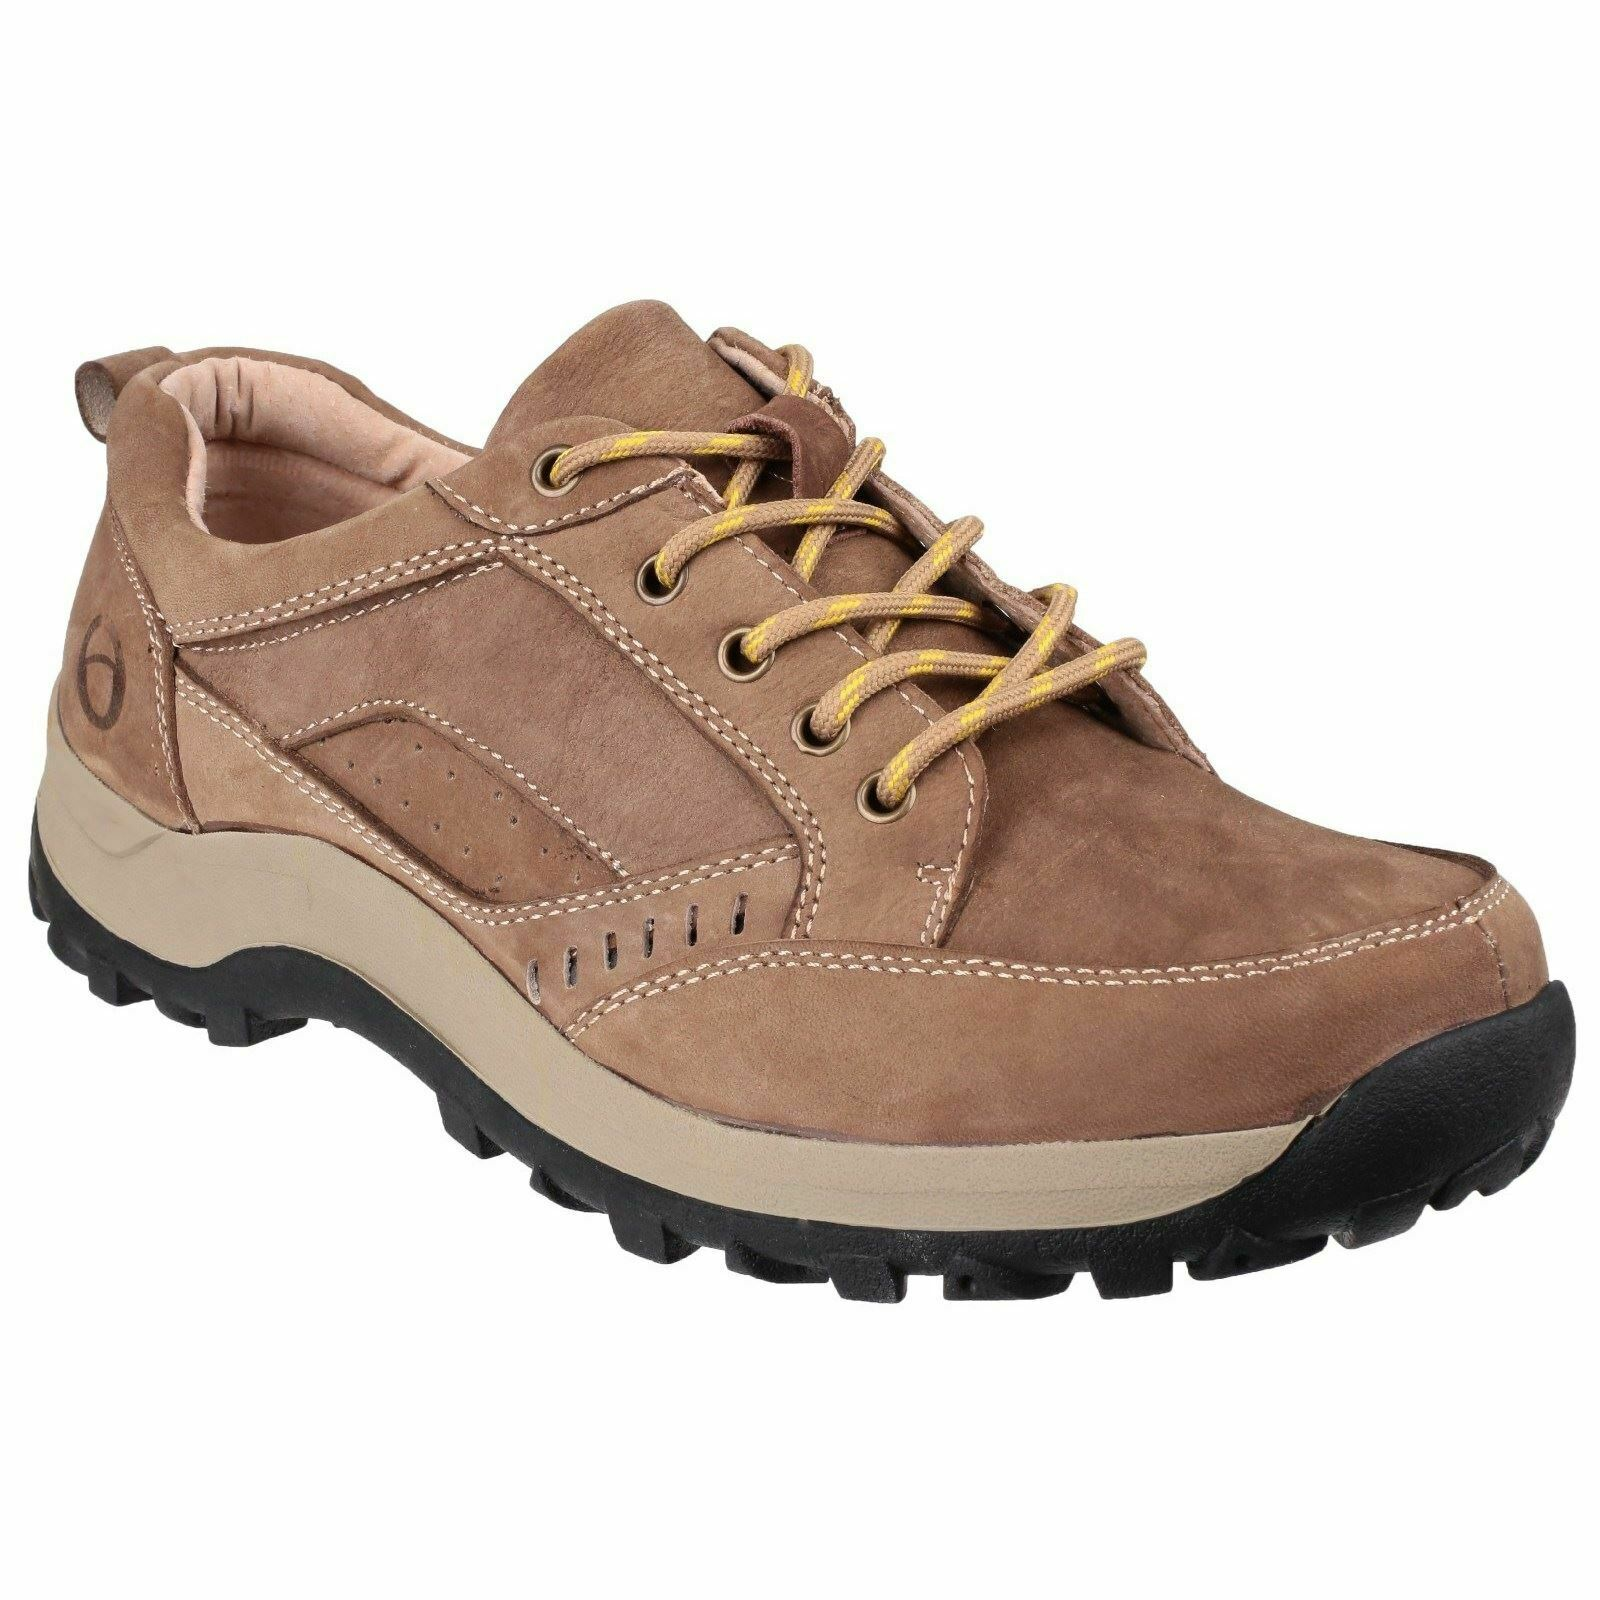 Cotswold Lace Mens shoes Nailsworth Lace Up shoes Tan Non Safety